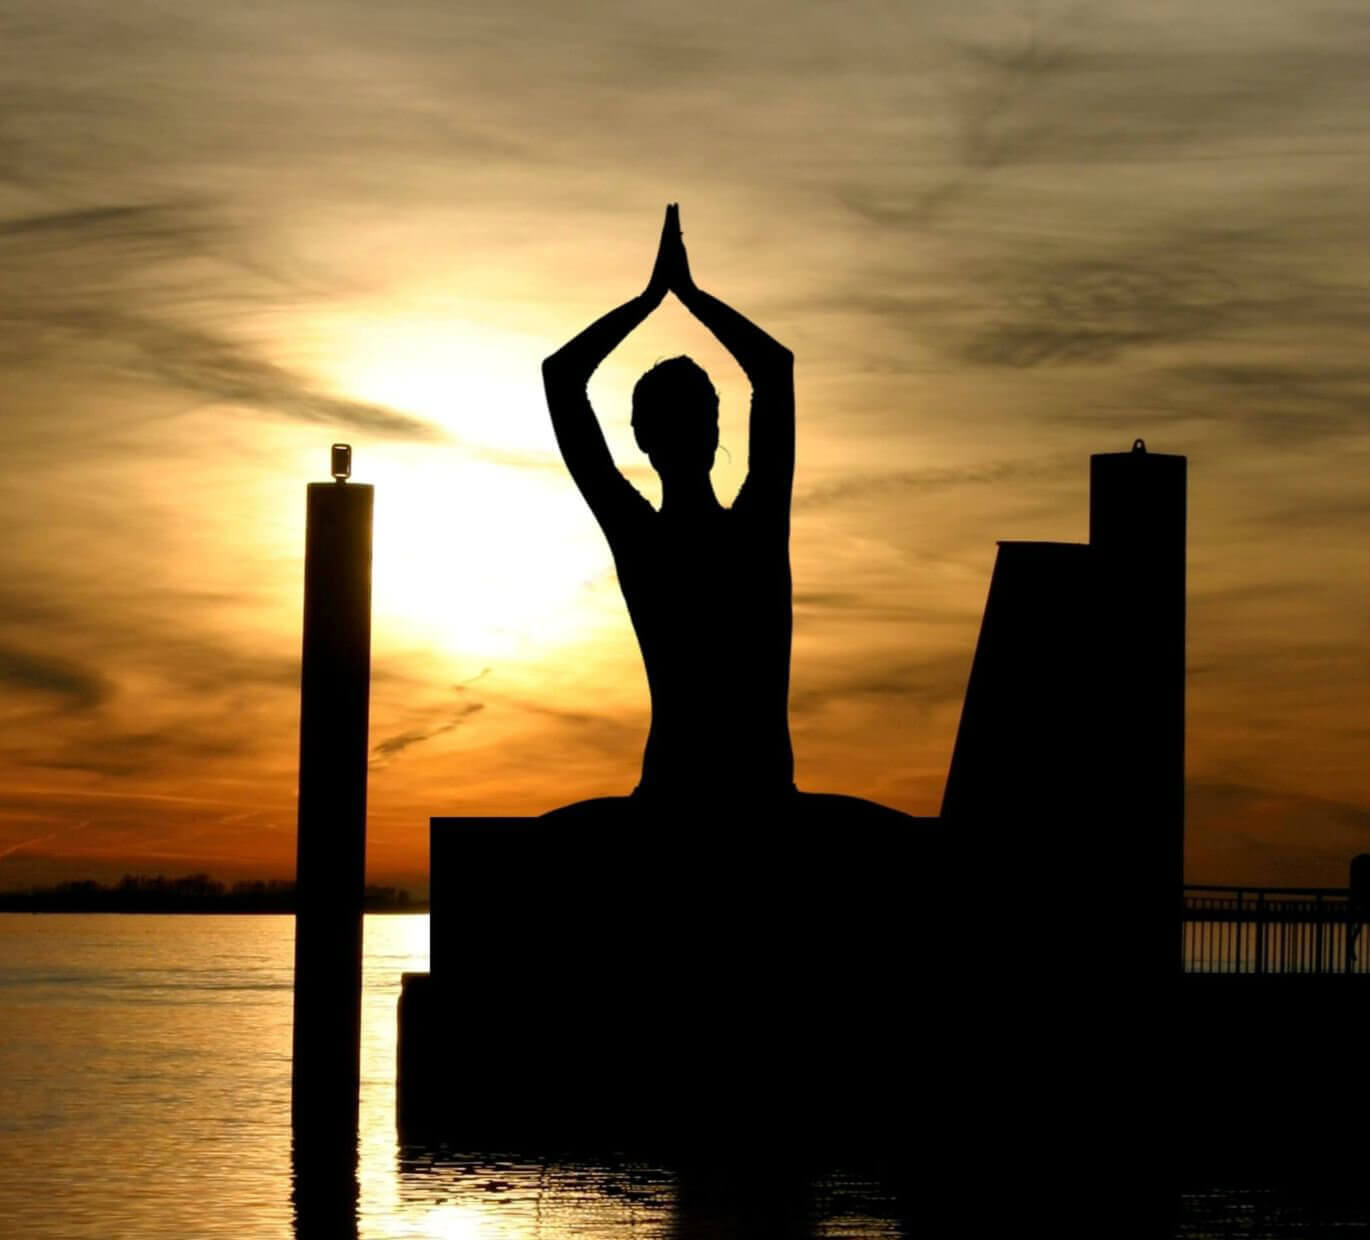 Silhouette of a woman doing a meditation pose during sunset